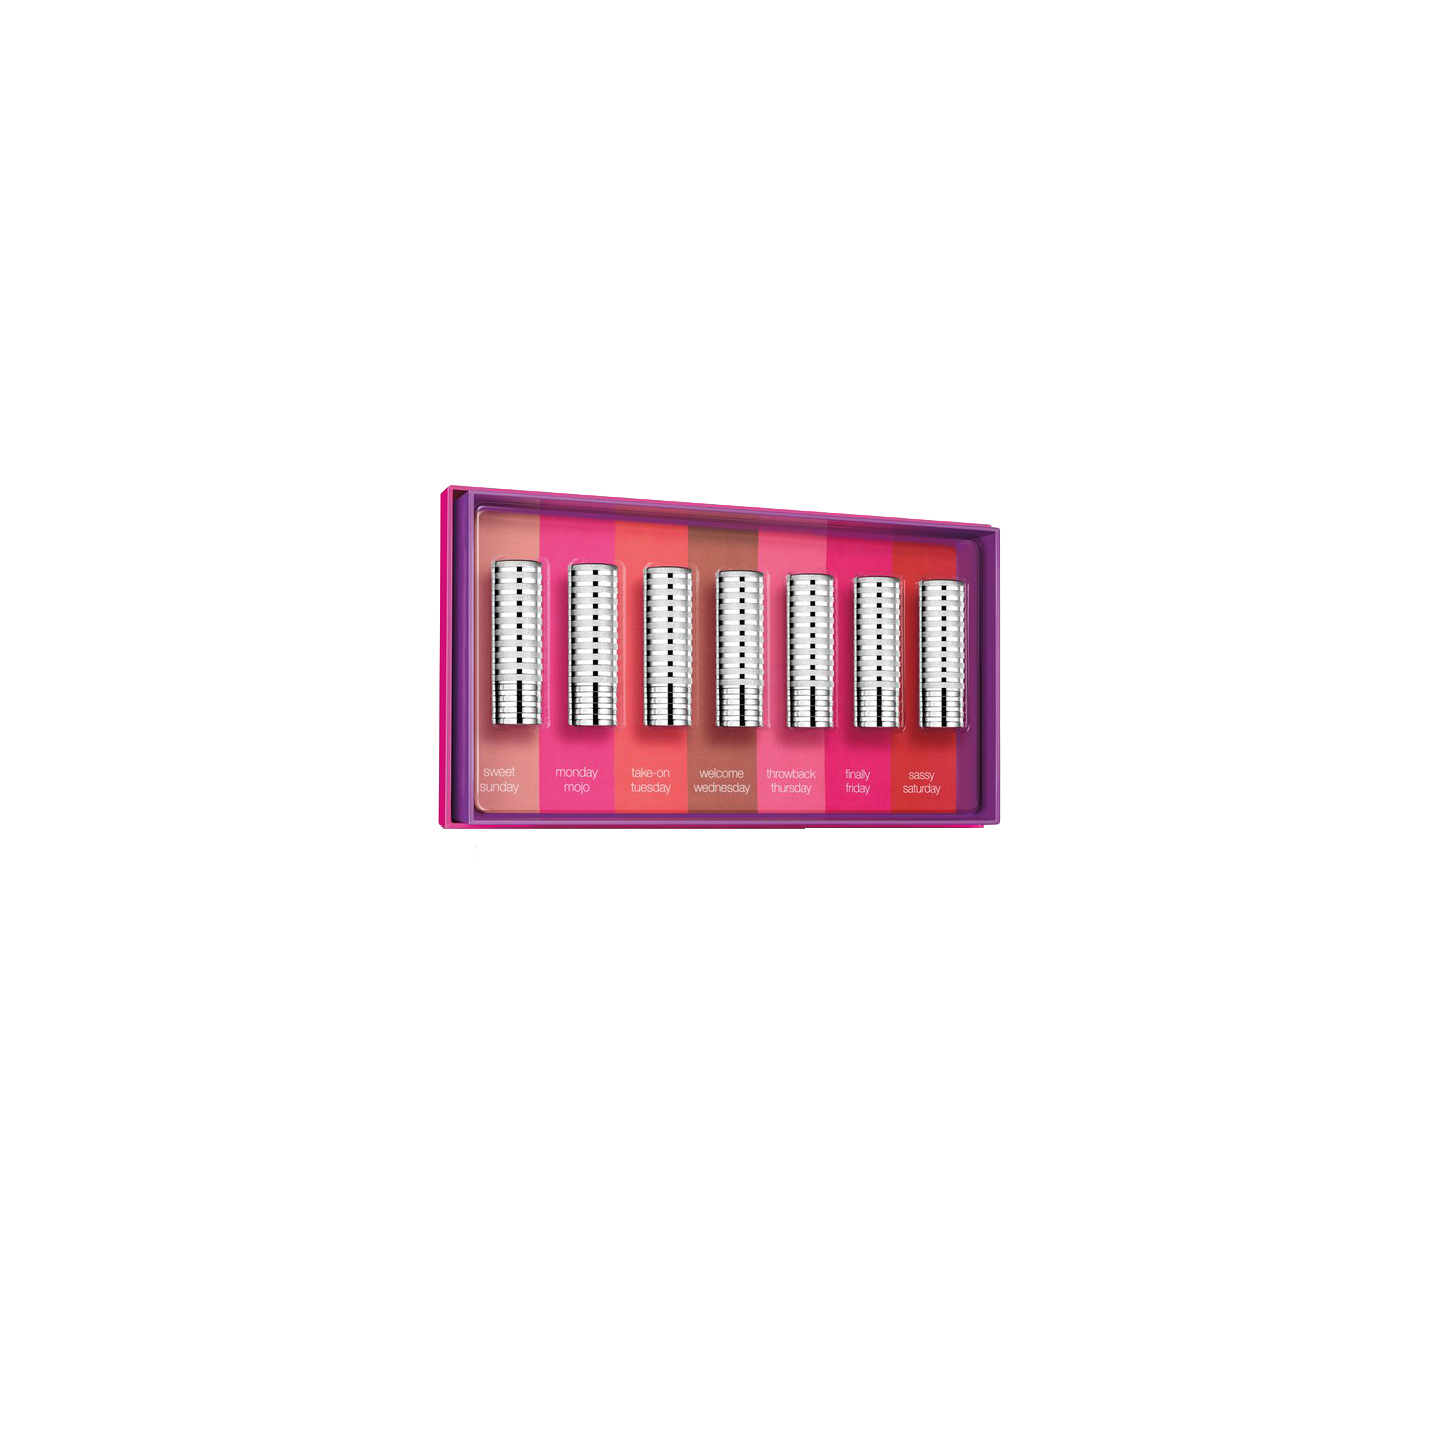 Clinique Days of the Week Lipstick Set